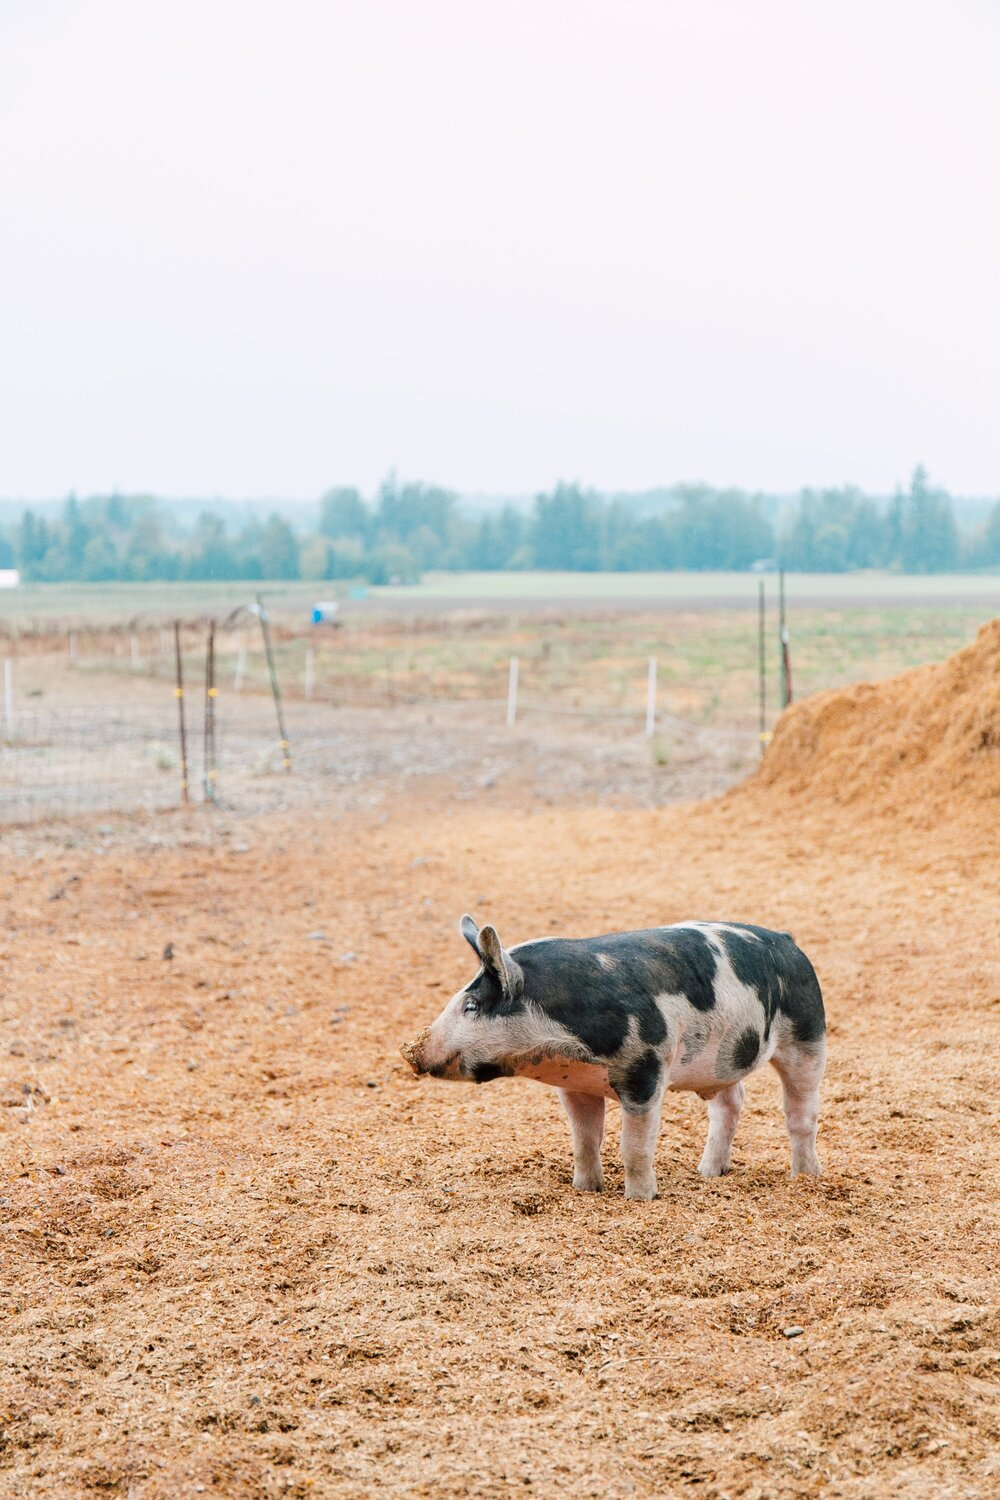 Looking out towards the alley where pigs access rotational paddocks, late August, and a dry time in the field. Kathryn Moran photography captures the colors beautifully.